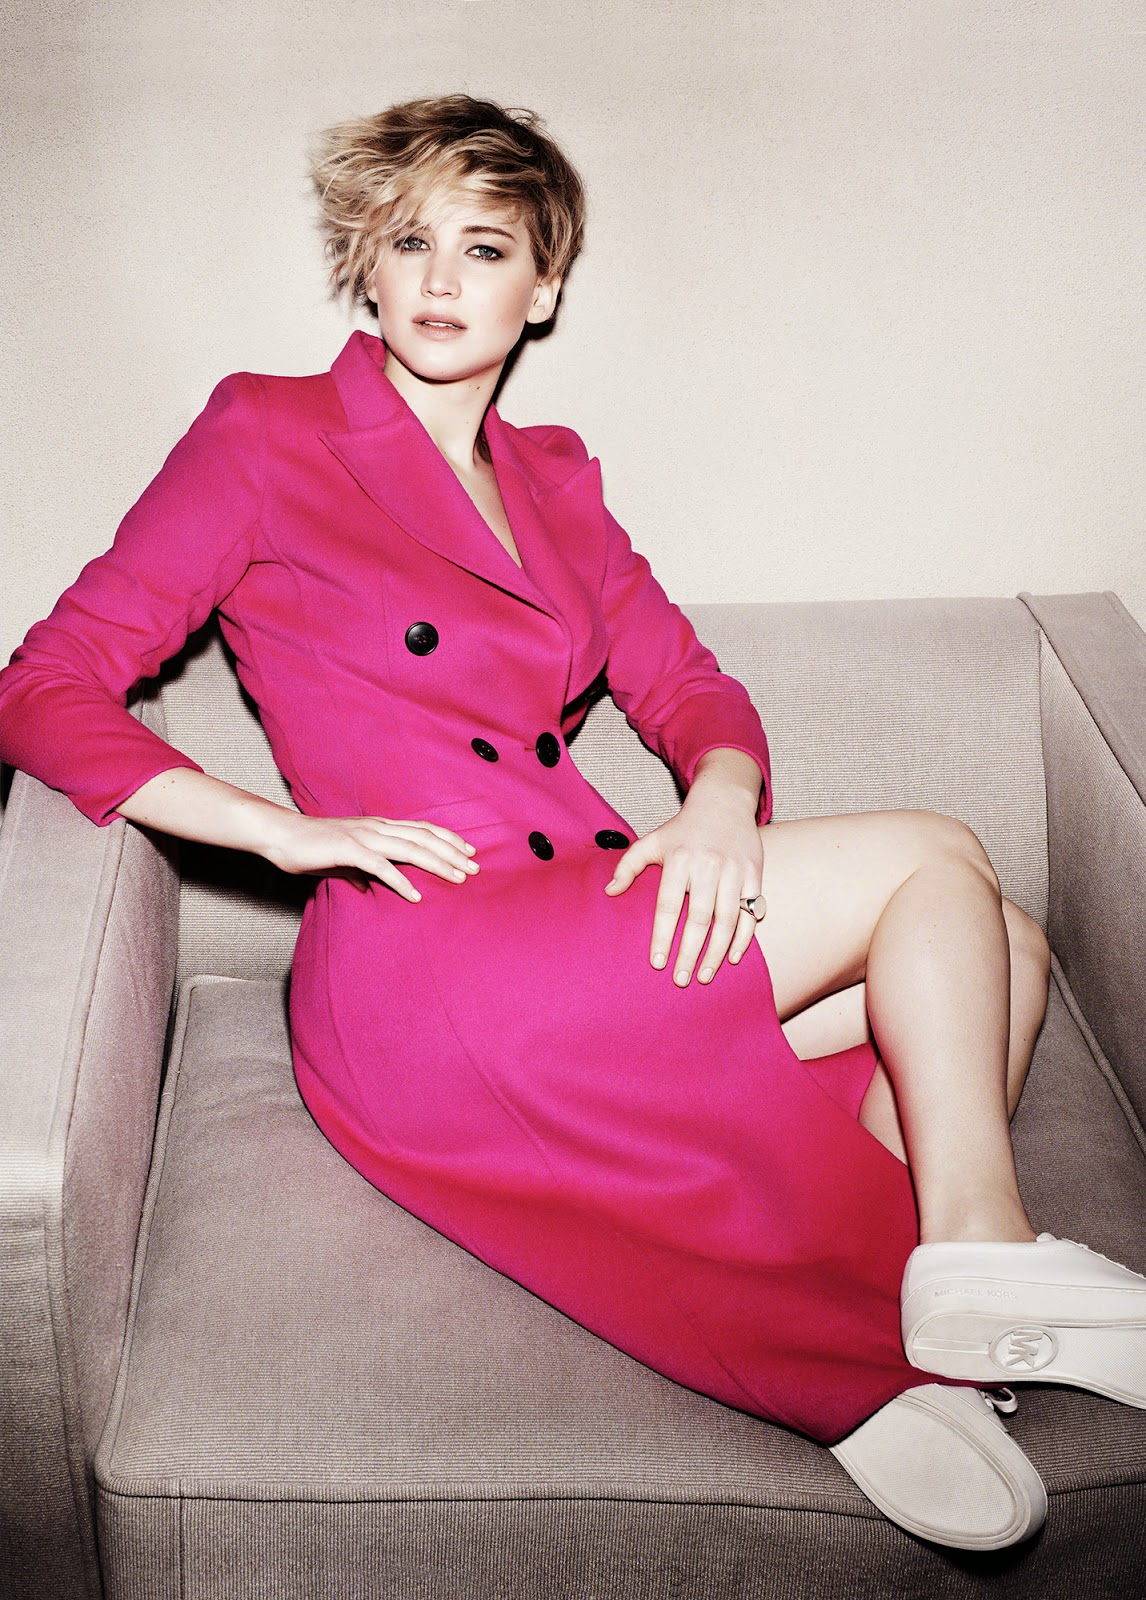 Jennifer Lawrence Jan Welters PS for Marie Claire June 2014